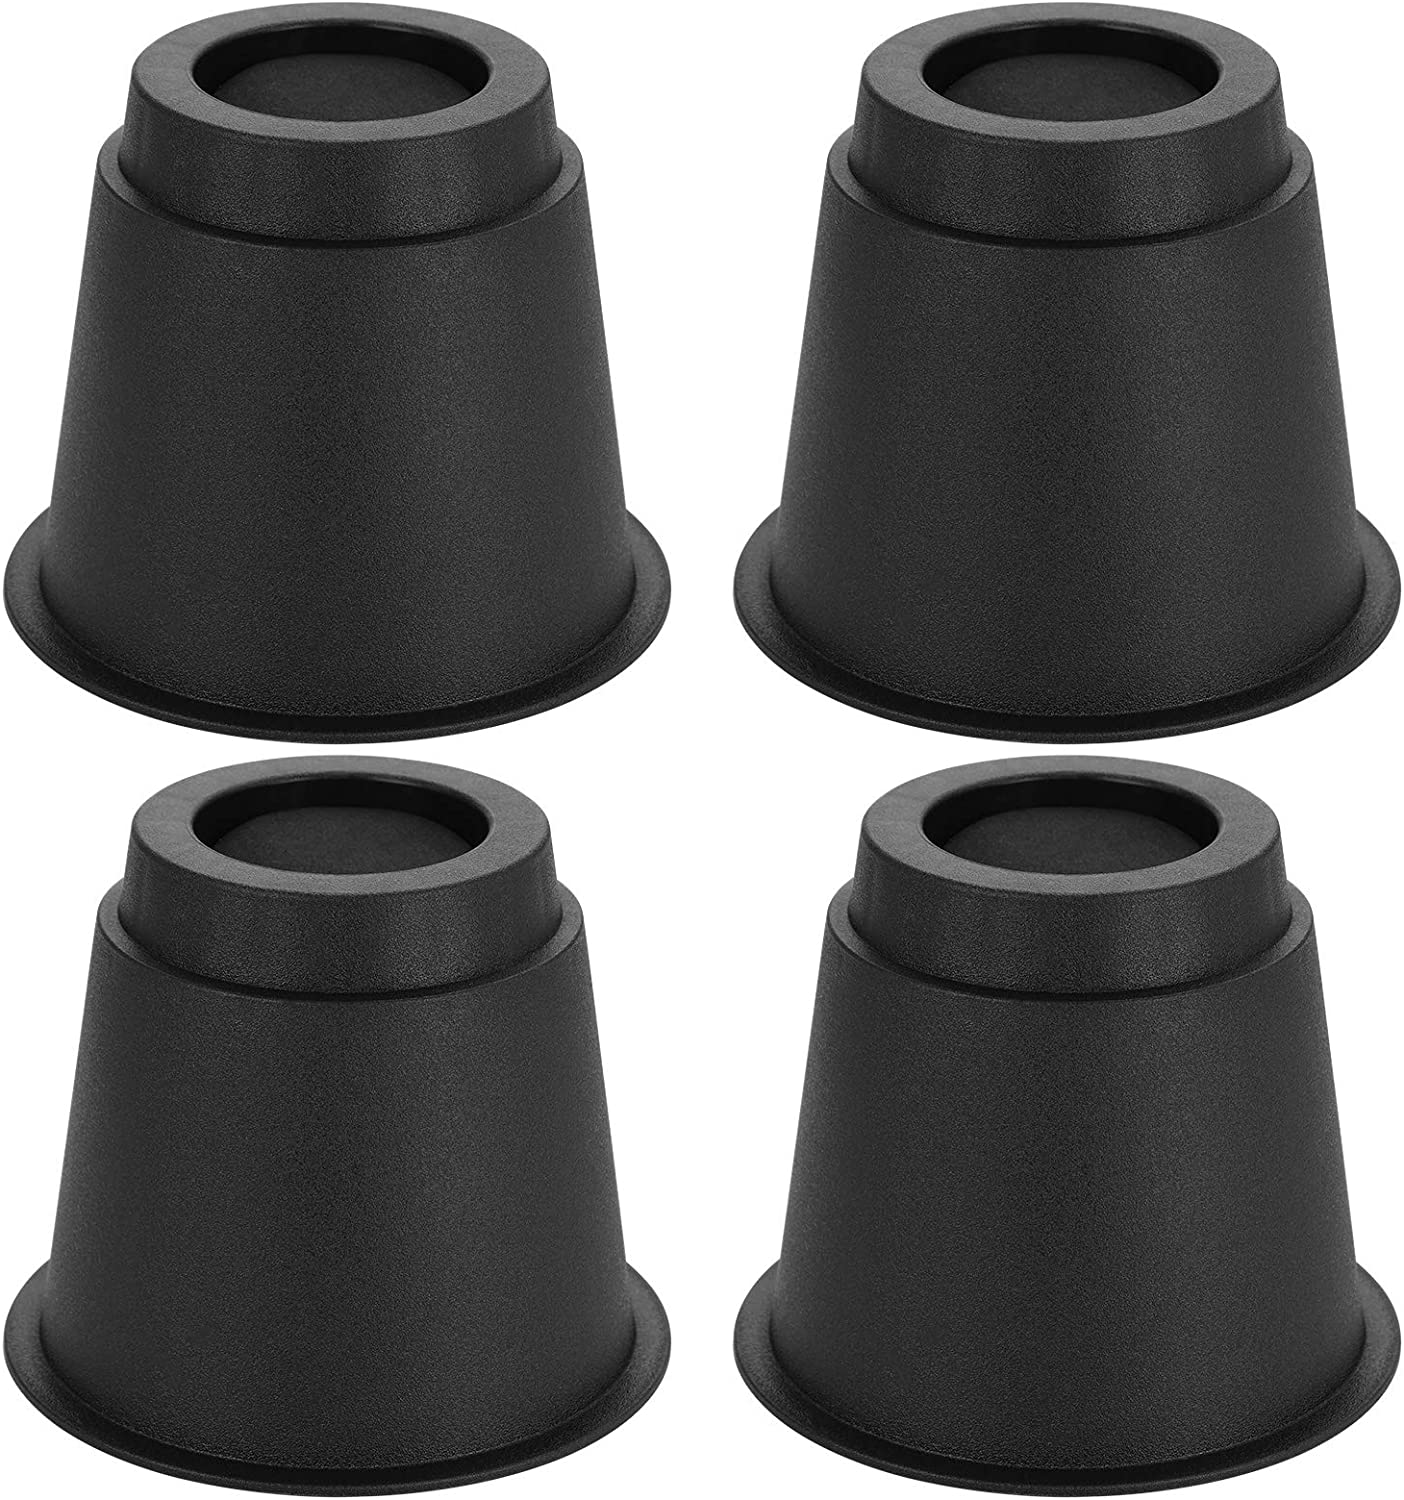 OwnMy 5 Inch Round Circular Bed Risers Bed Lifters Heavy Duty Furniture Risers Lifter for Bed Table Chair Desk Sofa Couch Risers, A Set of 4 (Black)